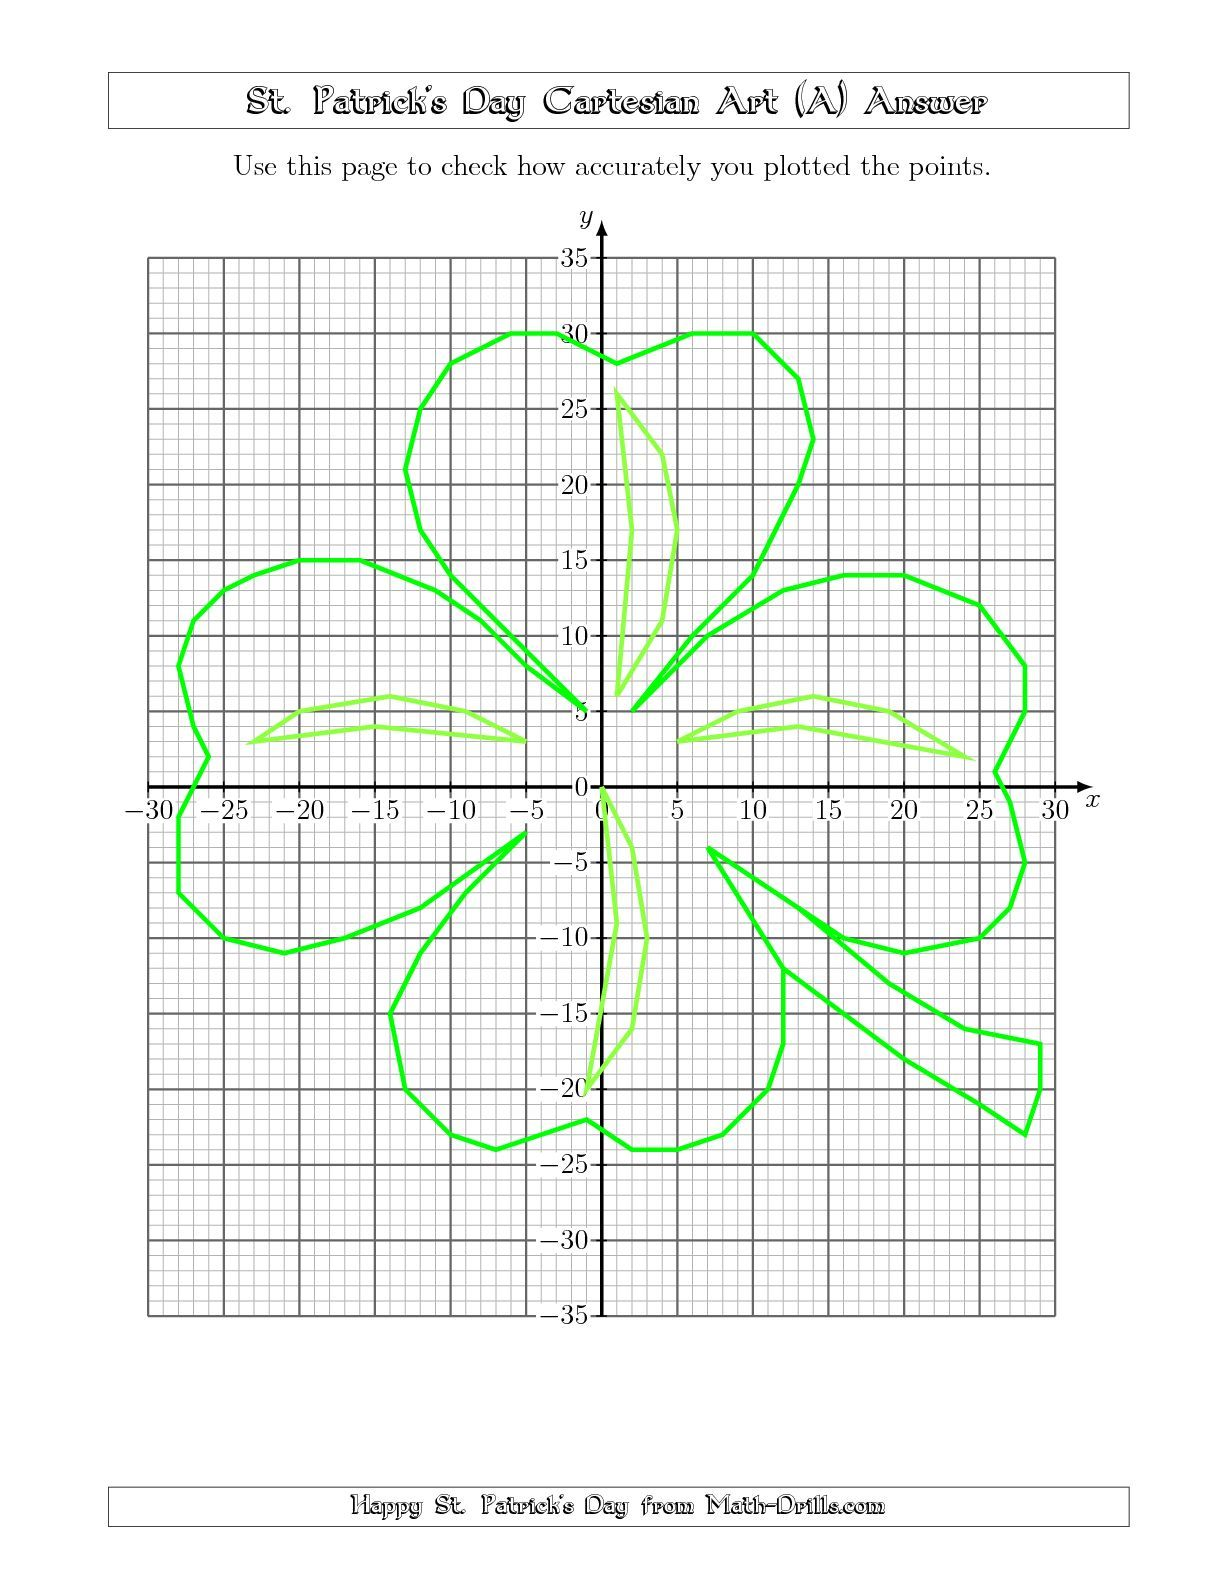 worksheet Holiday Coordinate Graphing new st patricks day cartesian art shamrock math worksheet freemath